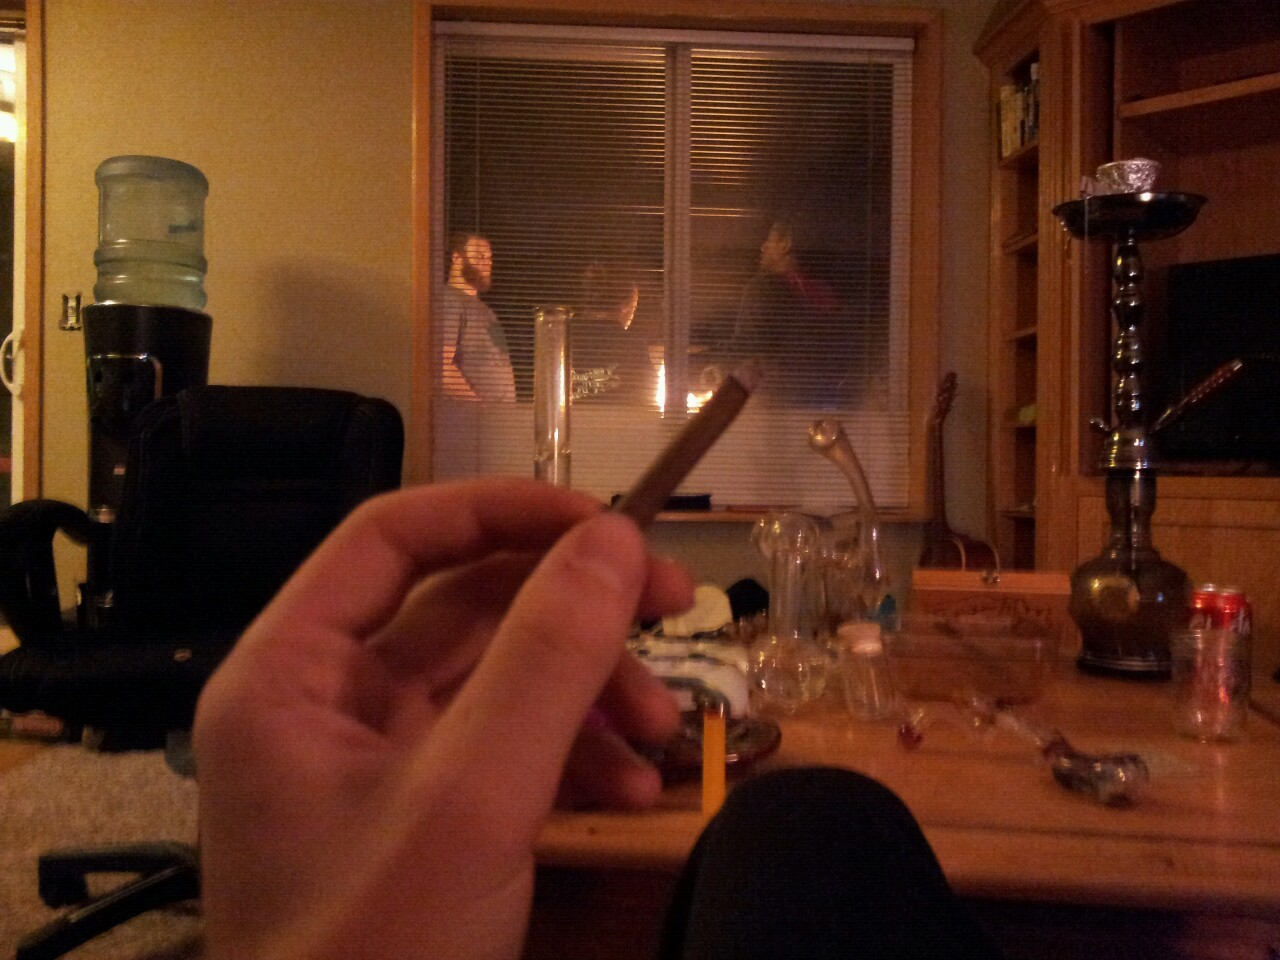 4/20 blunts with friends. :)